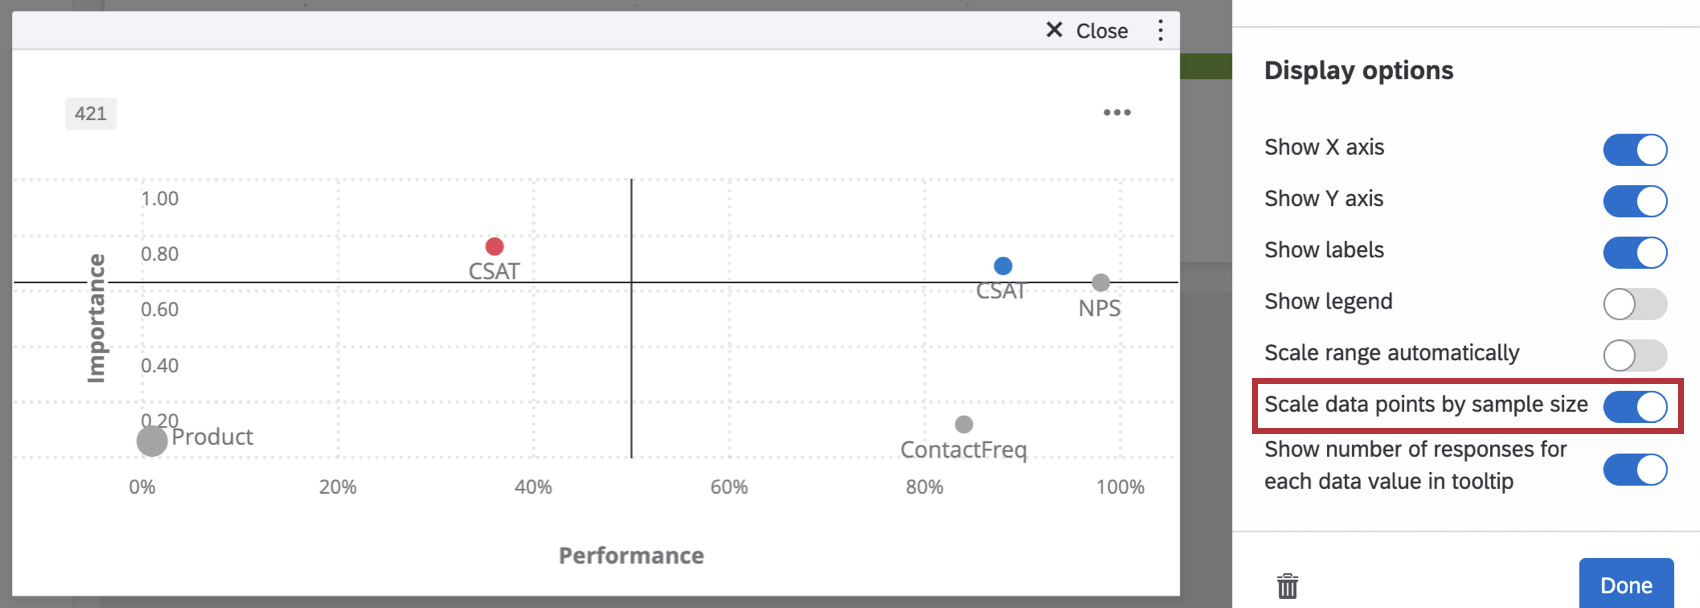 Scale Data Points by Sample Size checked in the Display Options